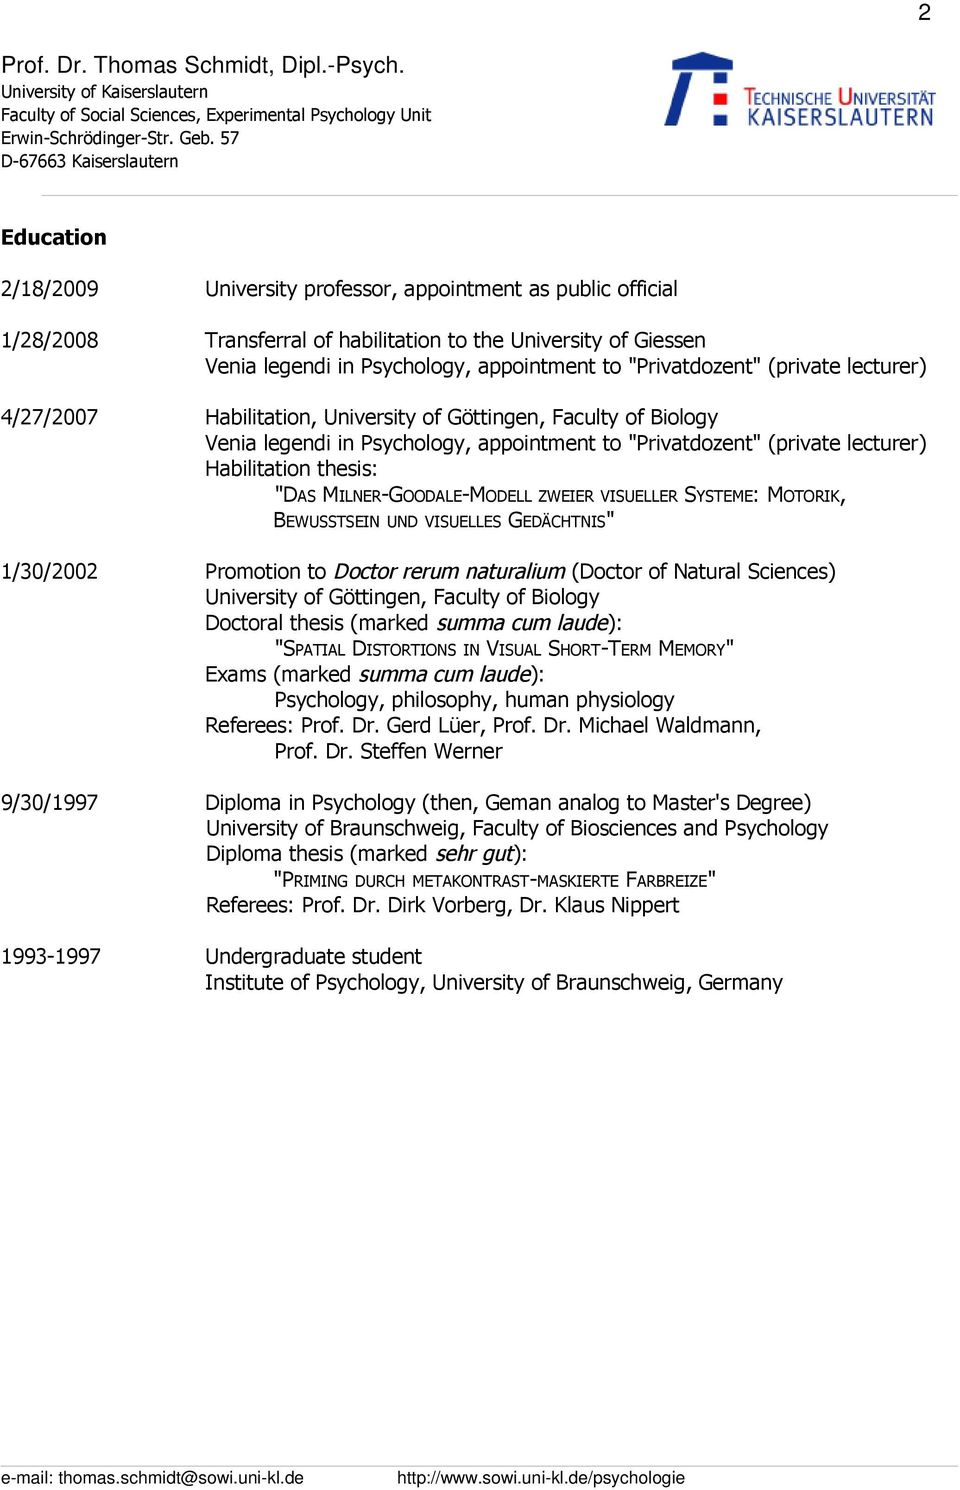 "(private lecturer) 4/27/2007 Habilitation, University of Göttingen, Faculty of Biology Venia legendi in Psychology, appointment to ""Privatdozent"" (private lecturer) Habilitation thesis: ""DAS"